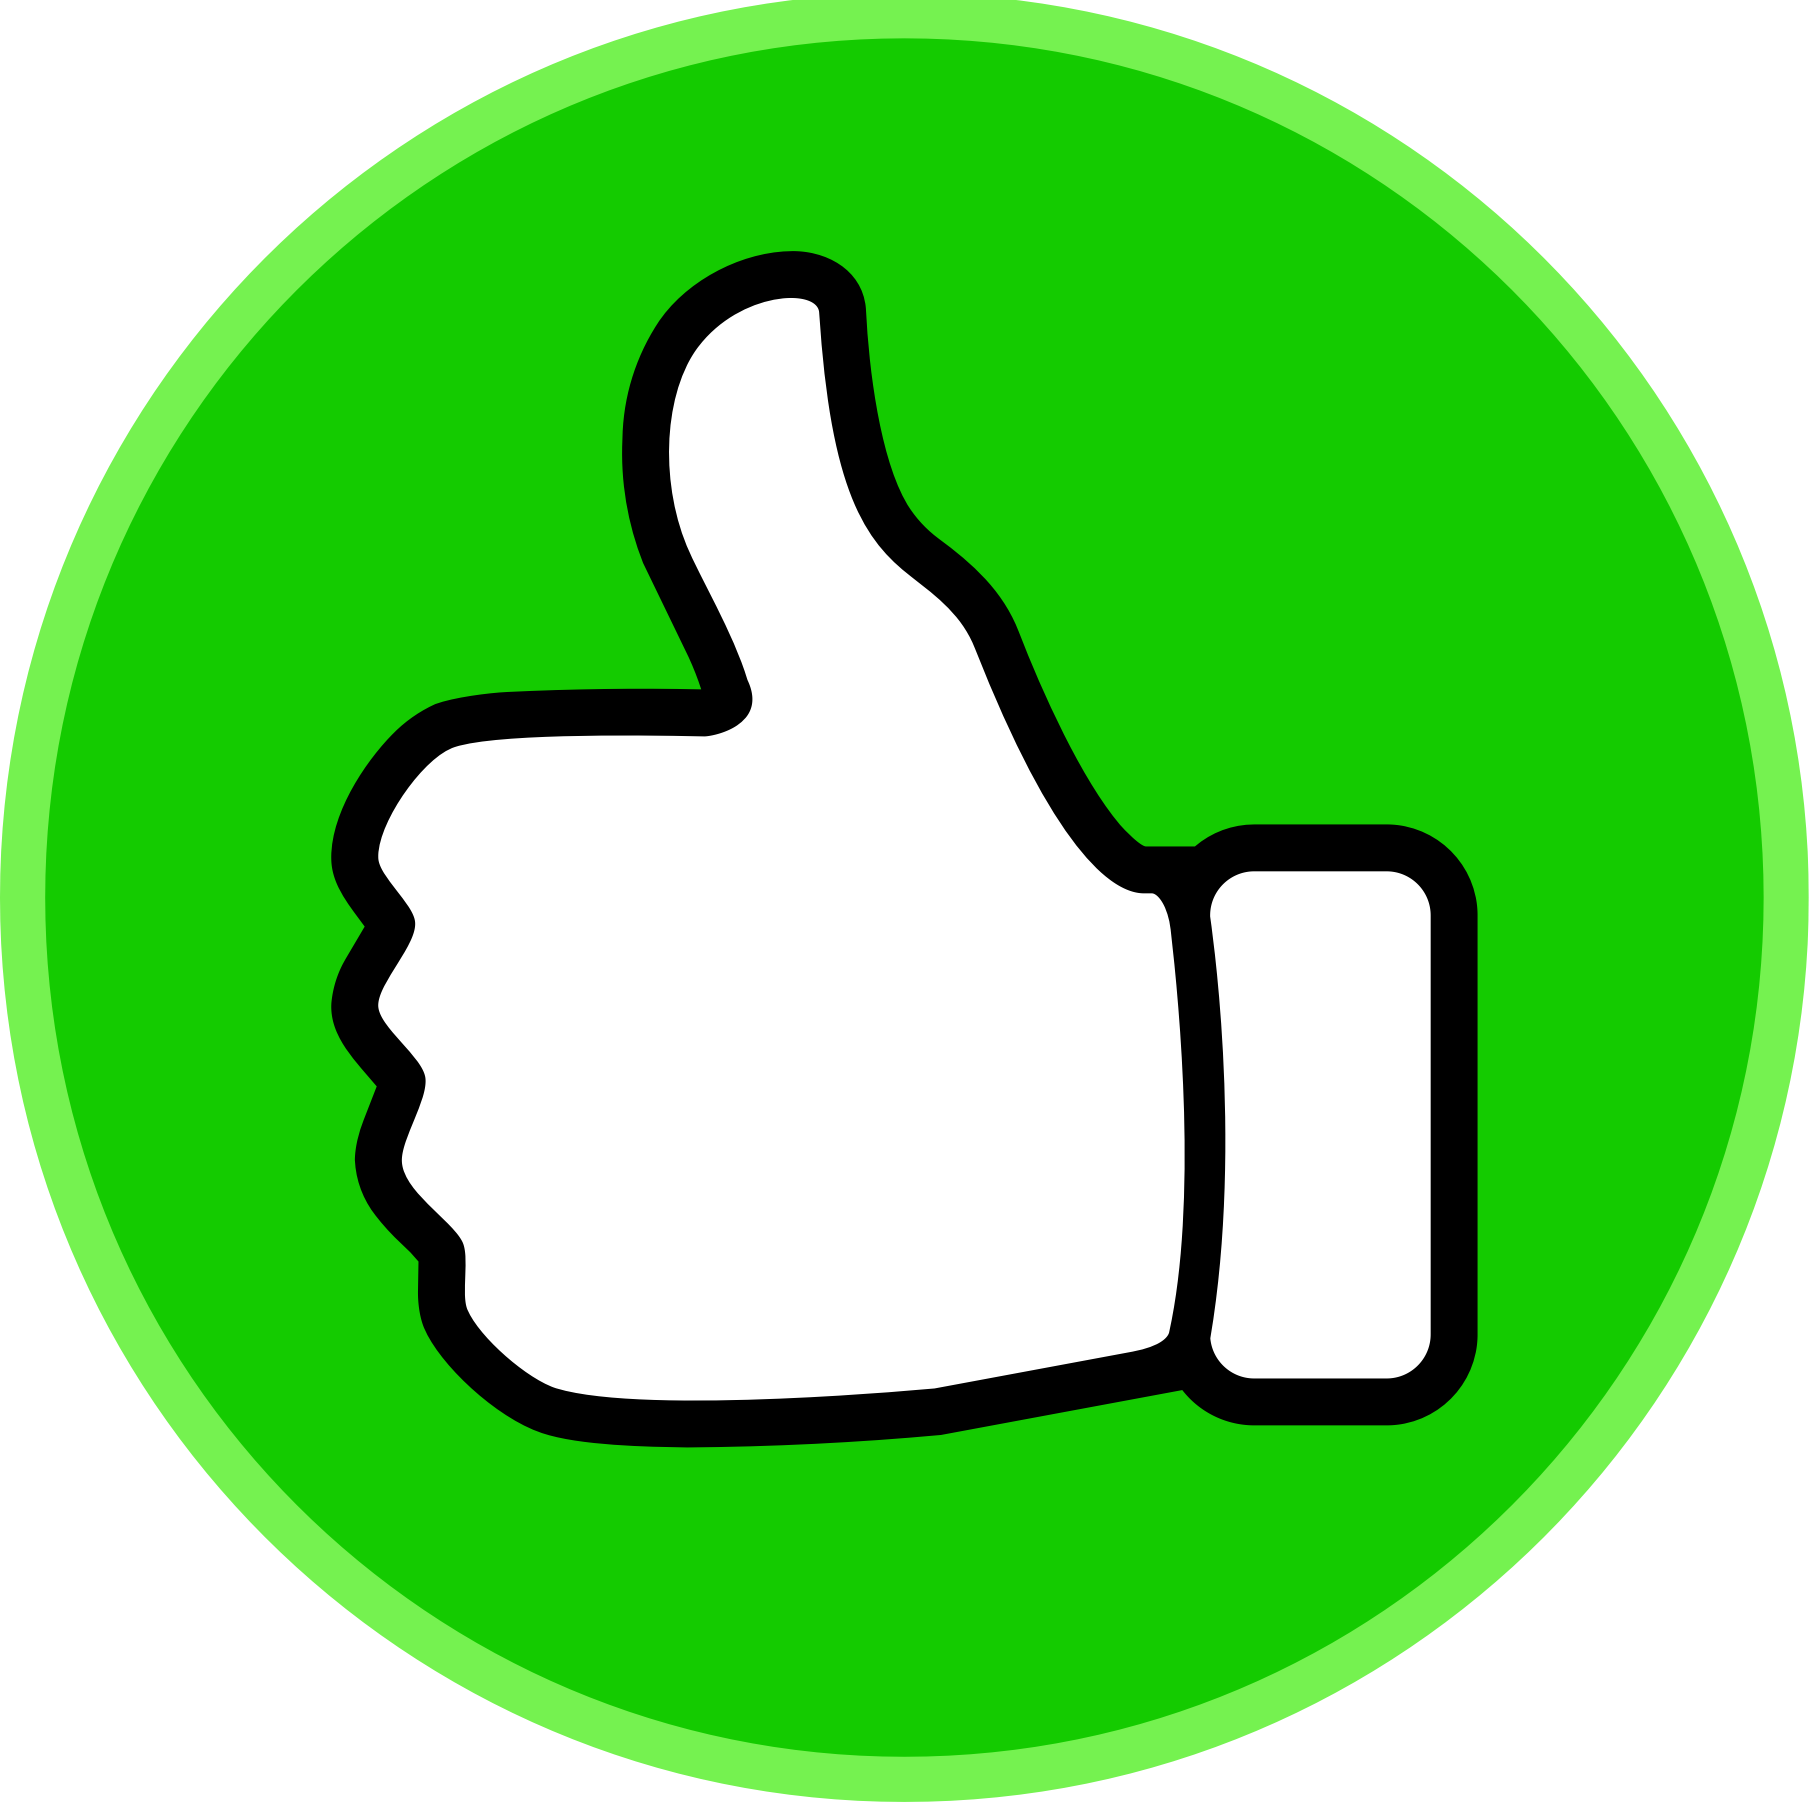 Best Thumbs Up Clipart #22075.